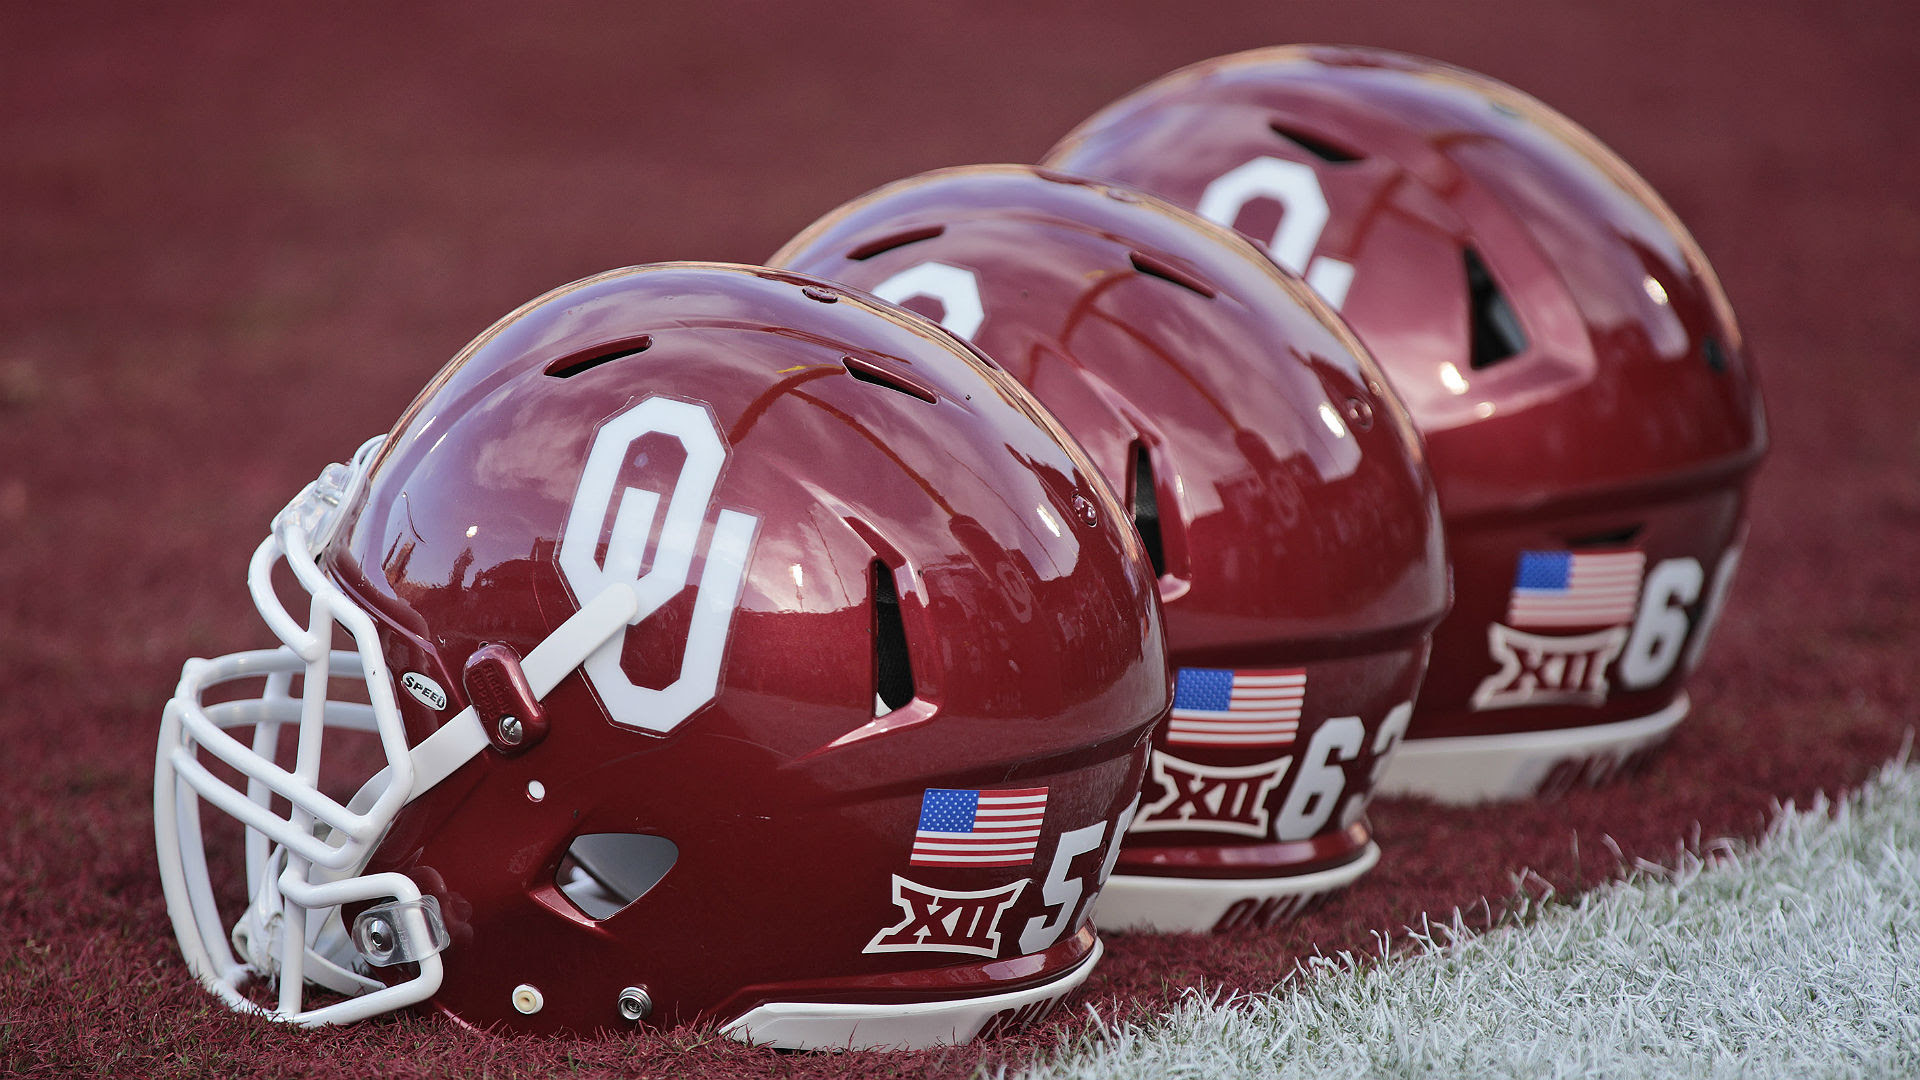 Oklahoma wide receiver Spencer Jones picks fight with MMA-trained person, nearly loses eye